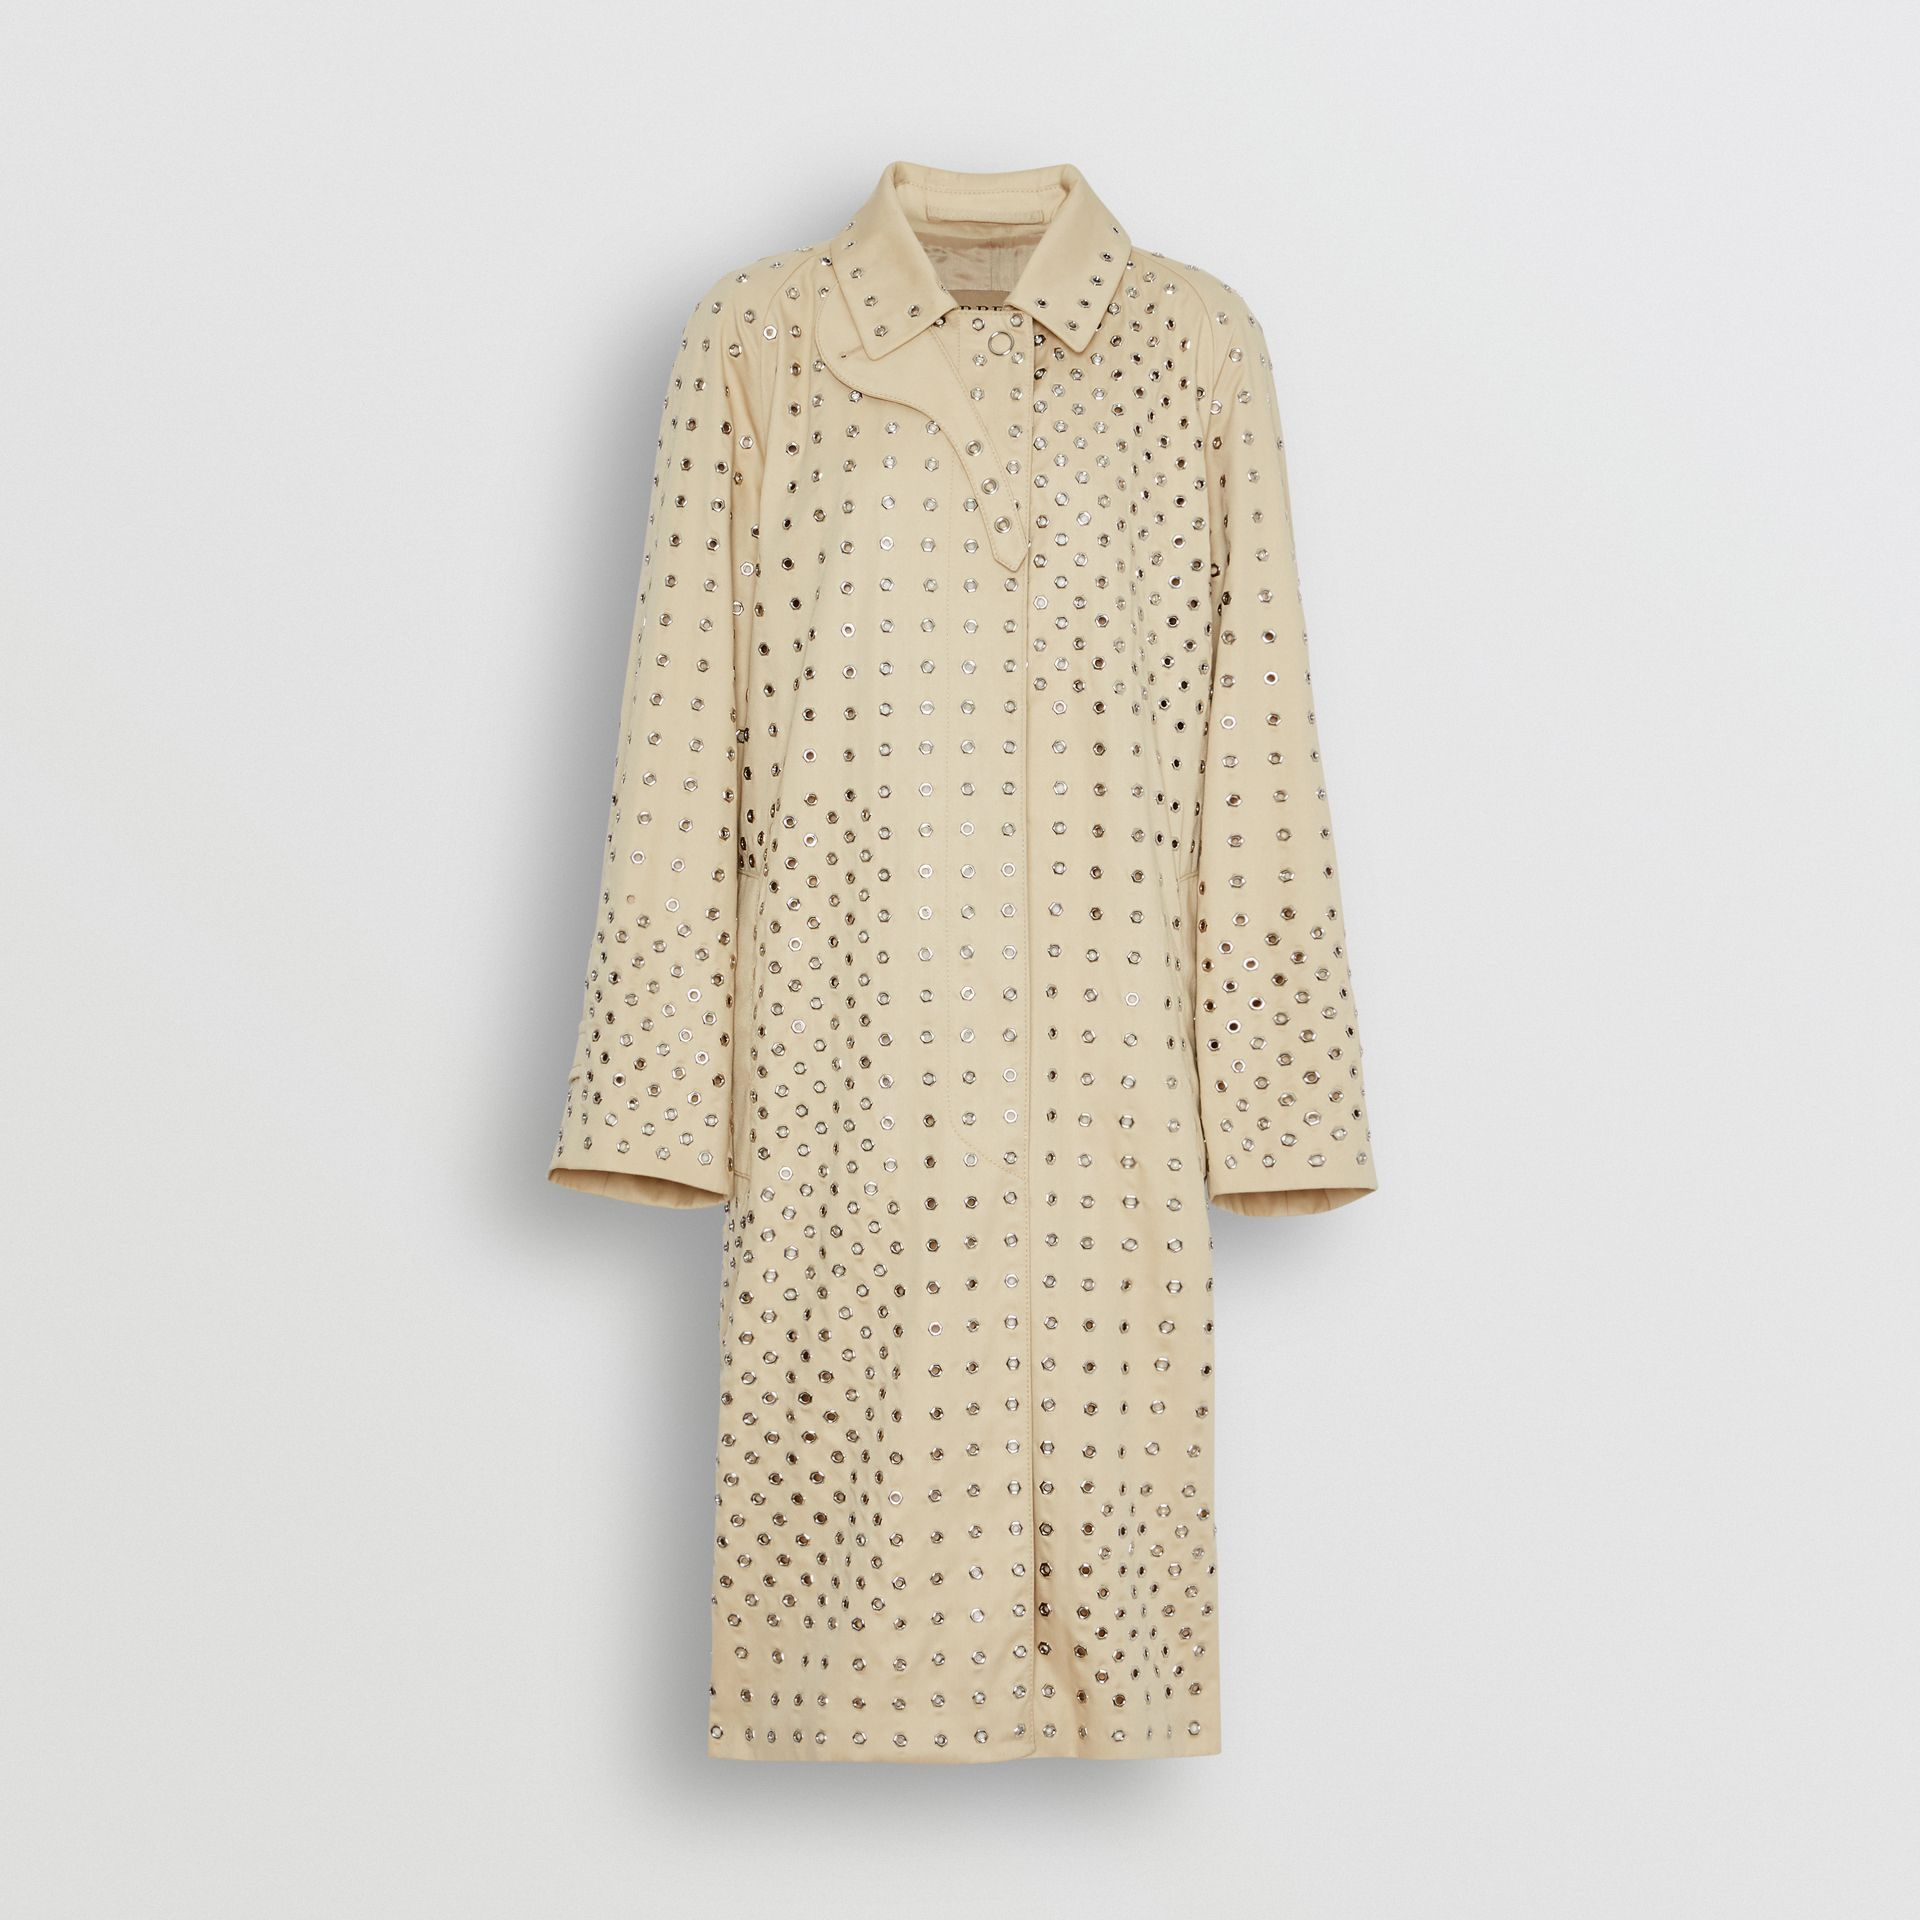 Eyelet Detail Cotton Car Coat in Light Beige - Women | Burberry - gallery image 3